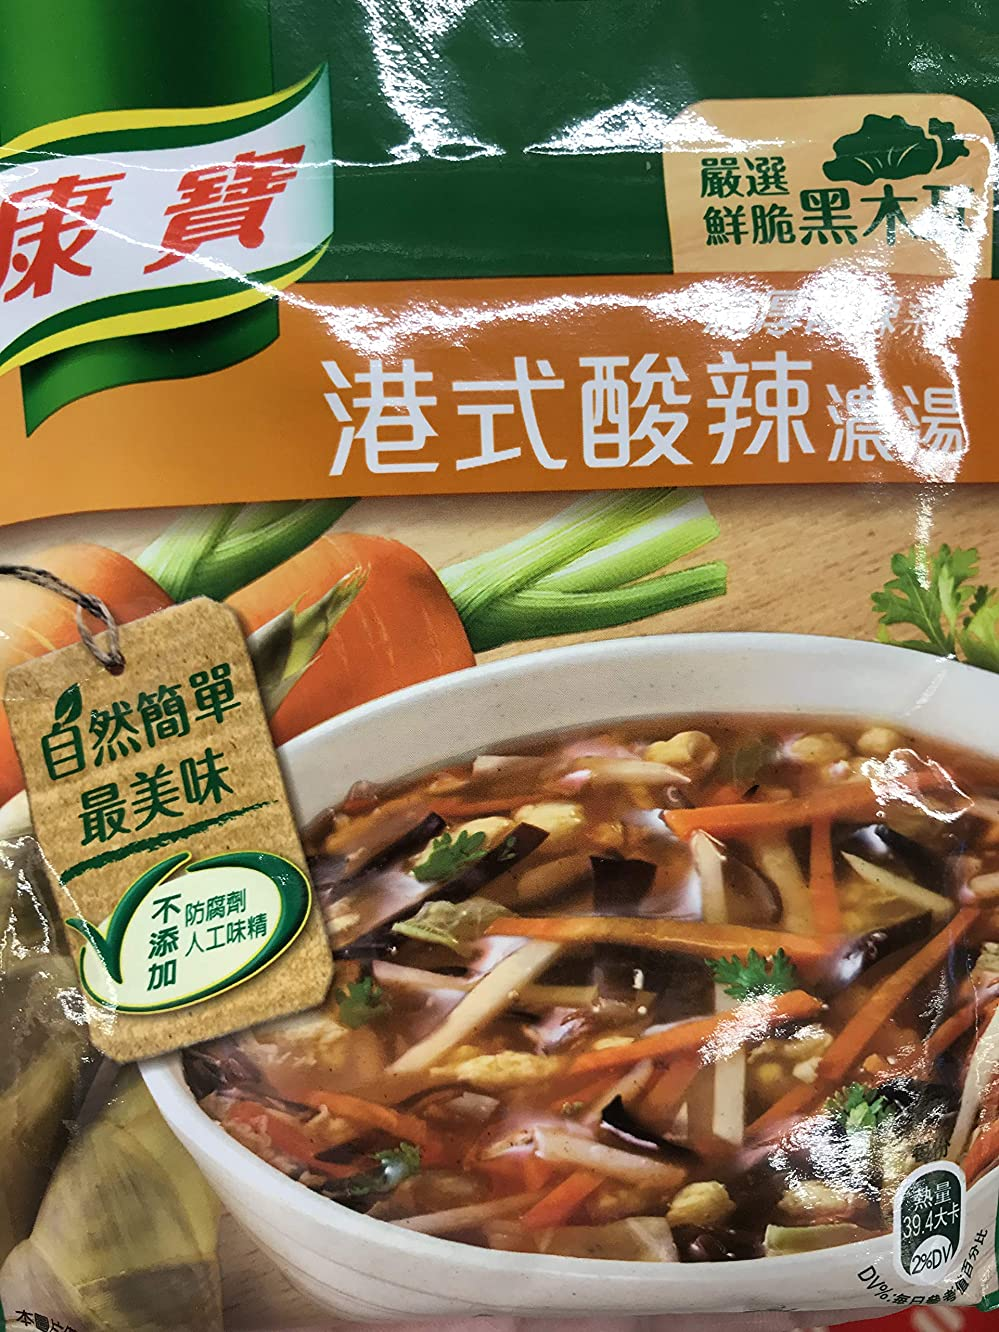 Hot & Sour Soup Mix - 1.77 oz - Product of Taiwan